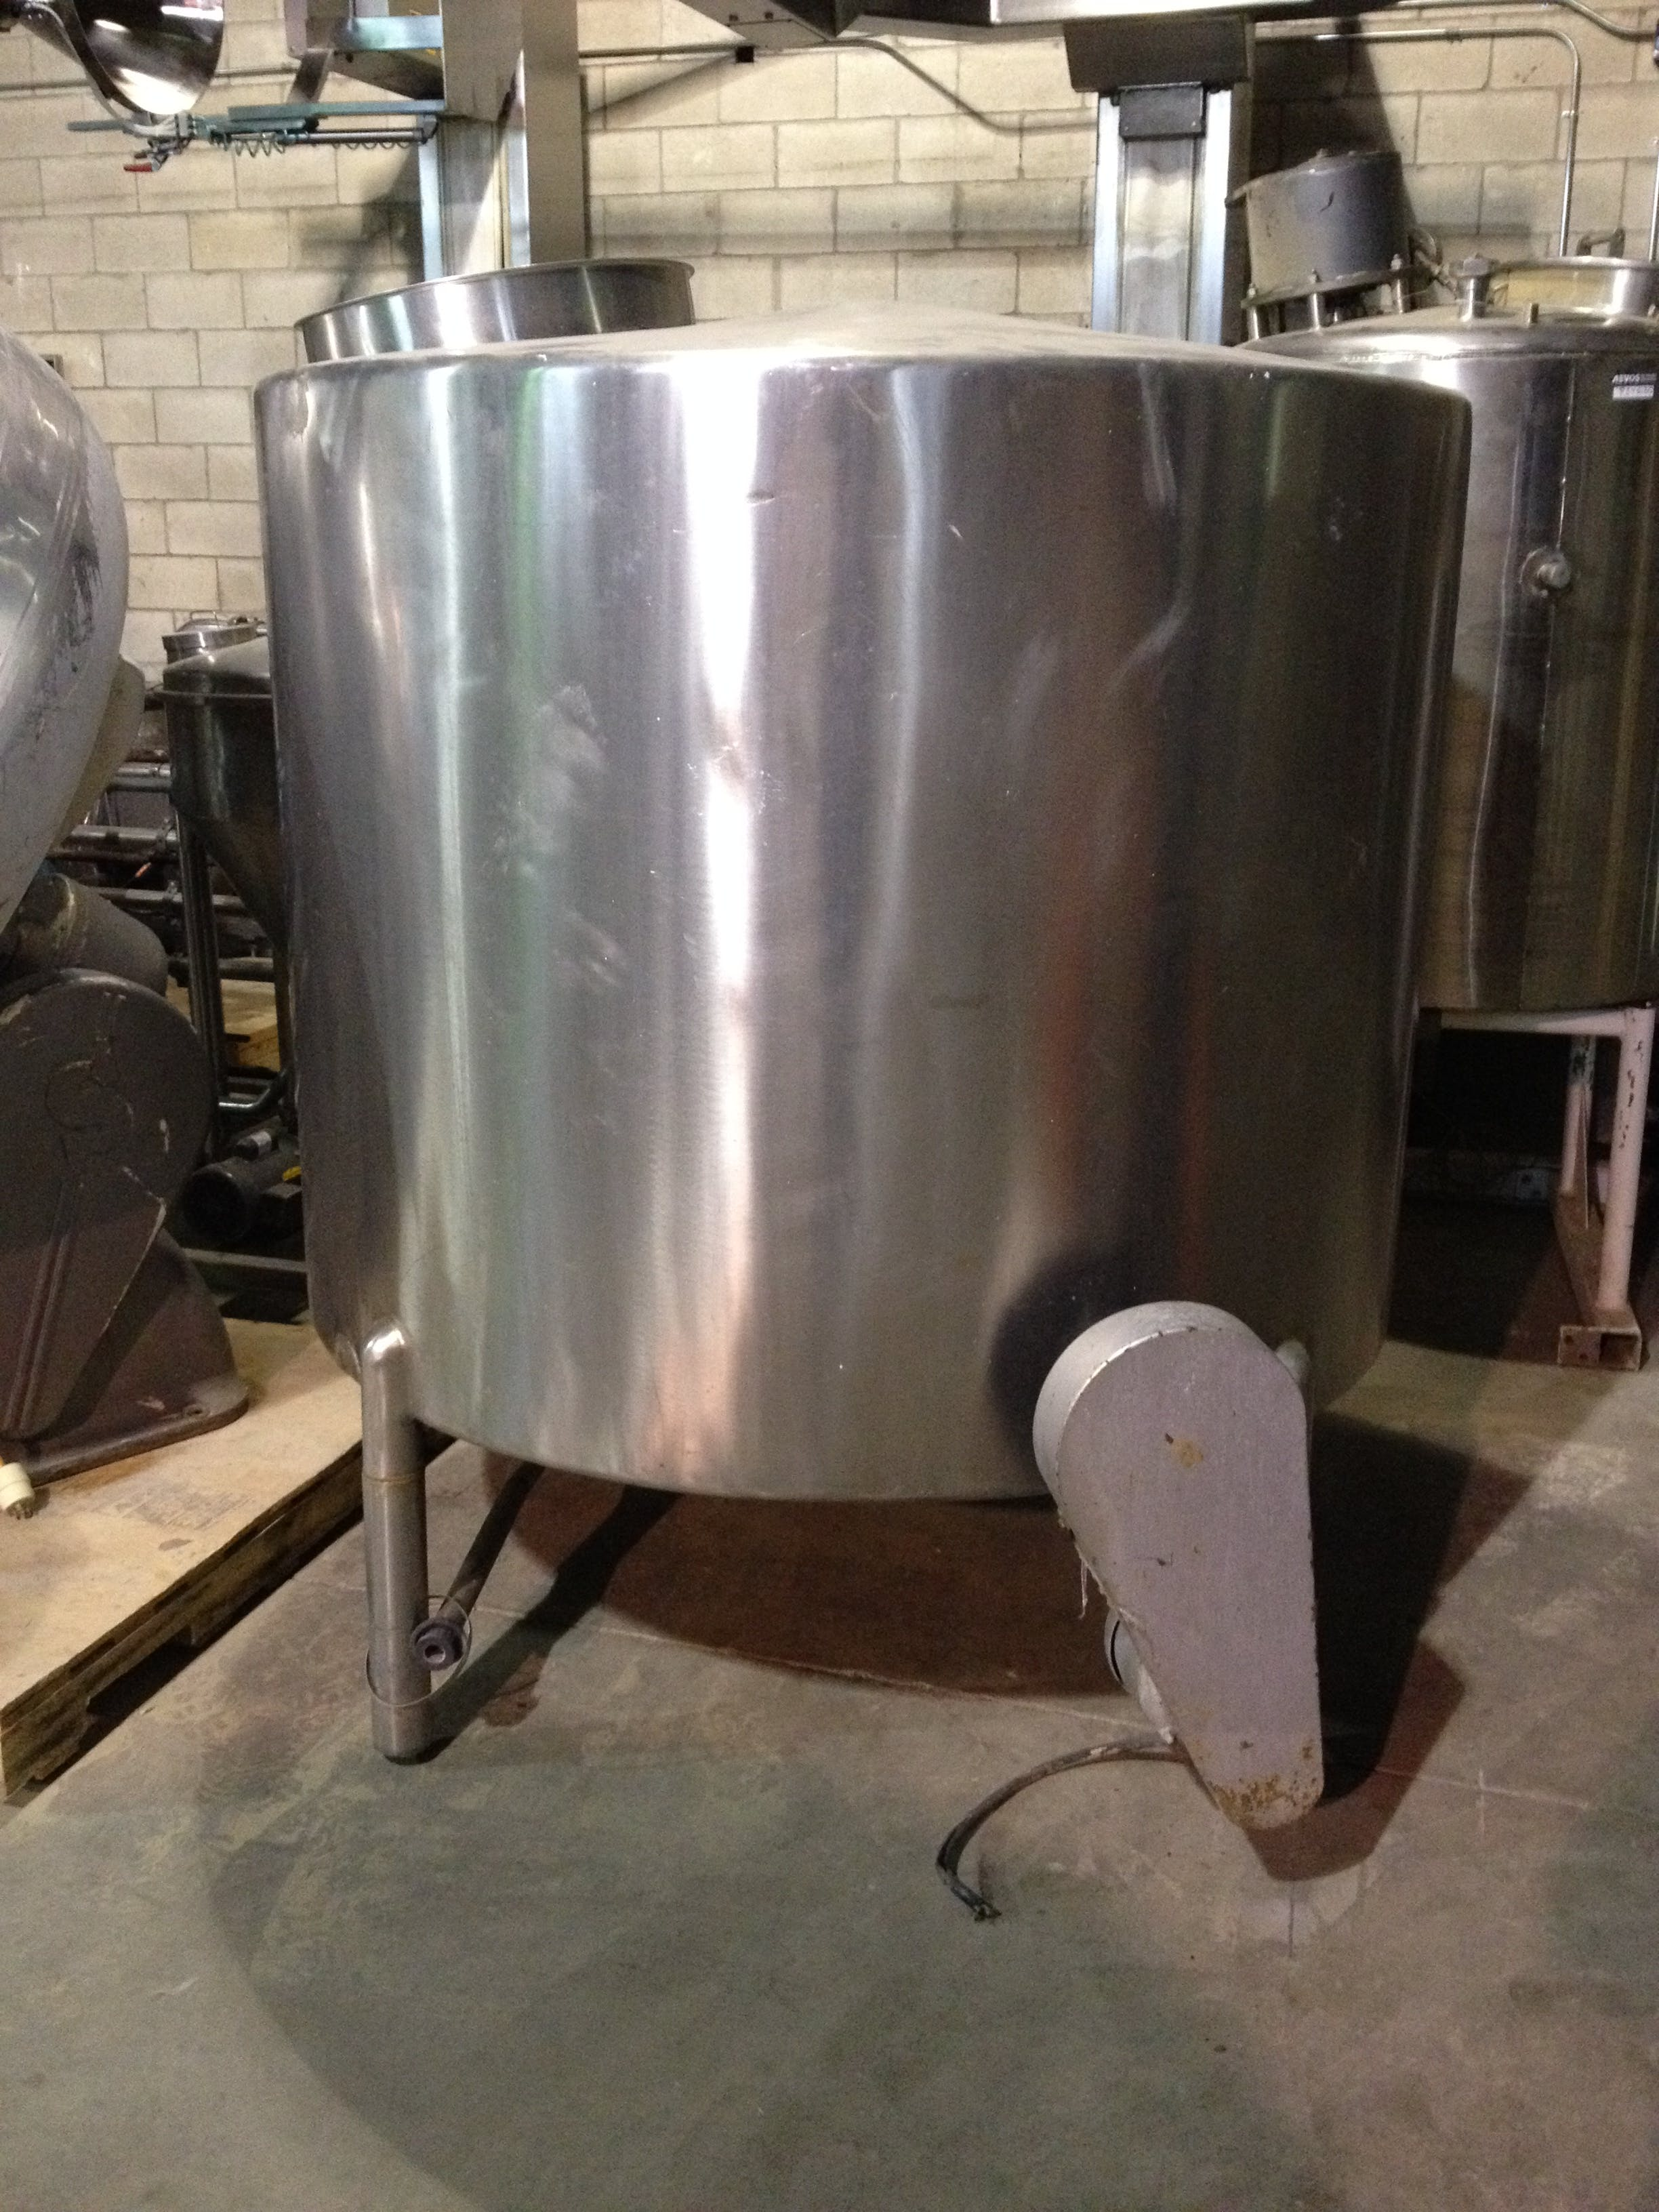 Mixing SS Tank - 608 gallons Chemical tank sold by Aevos Equipment